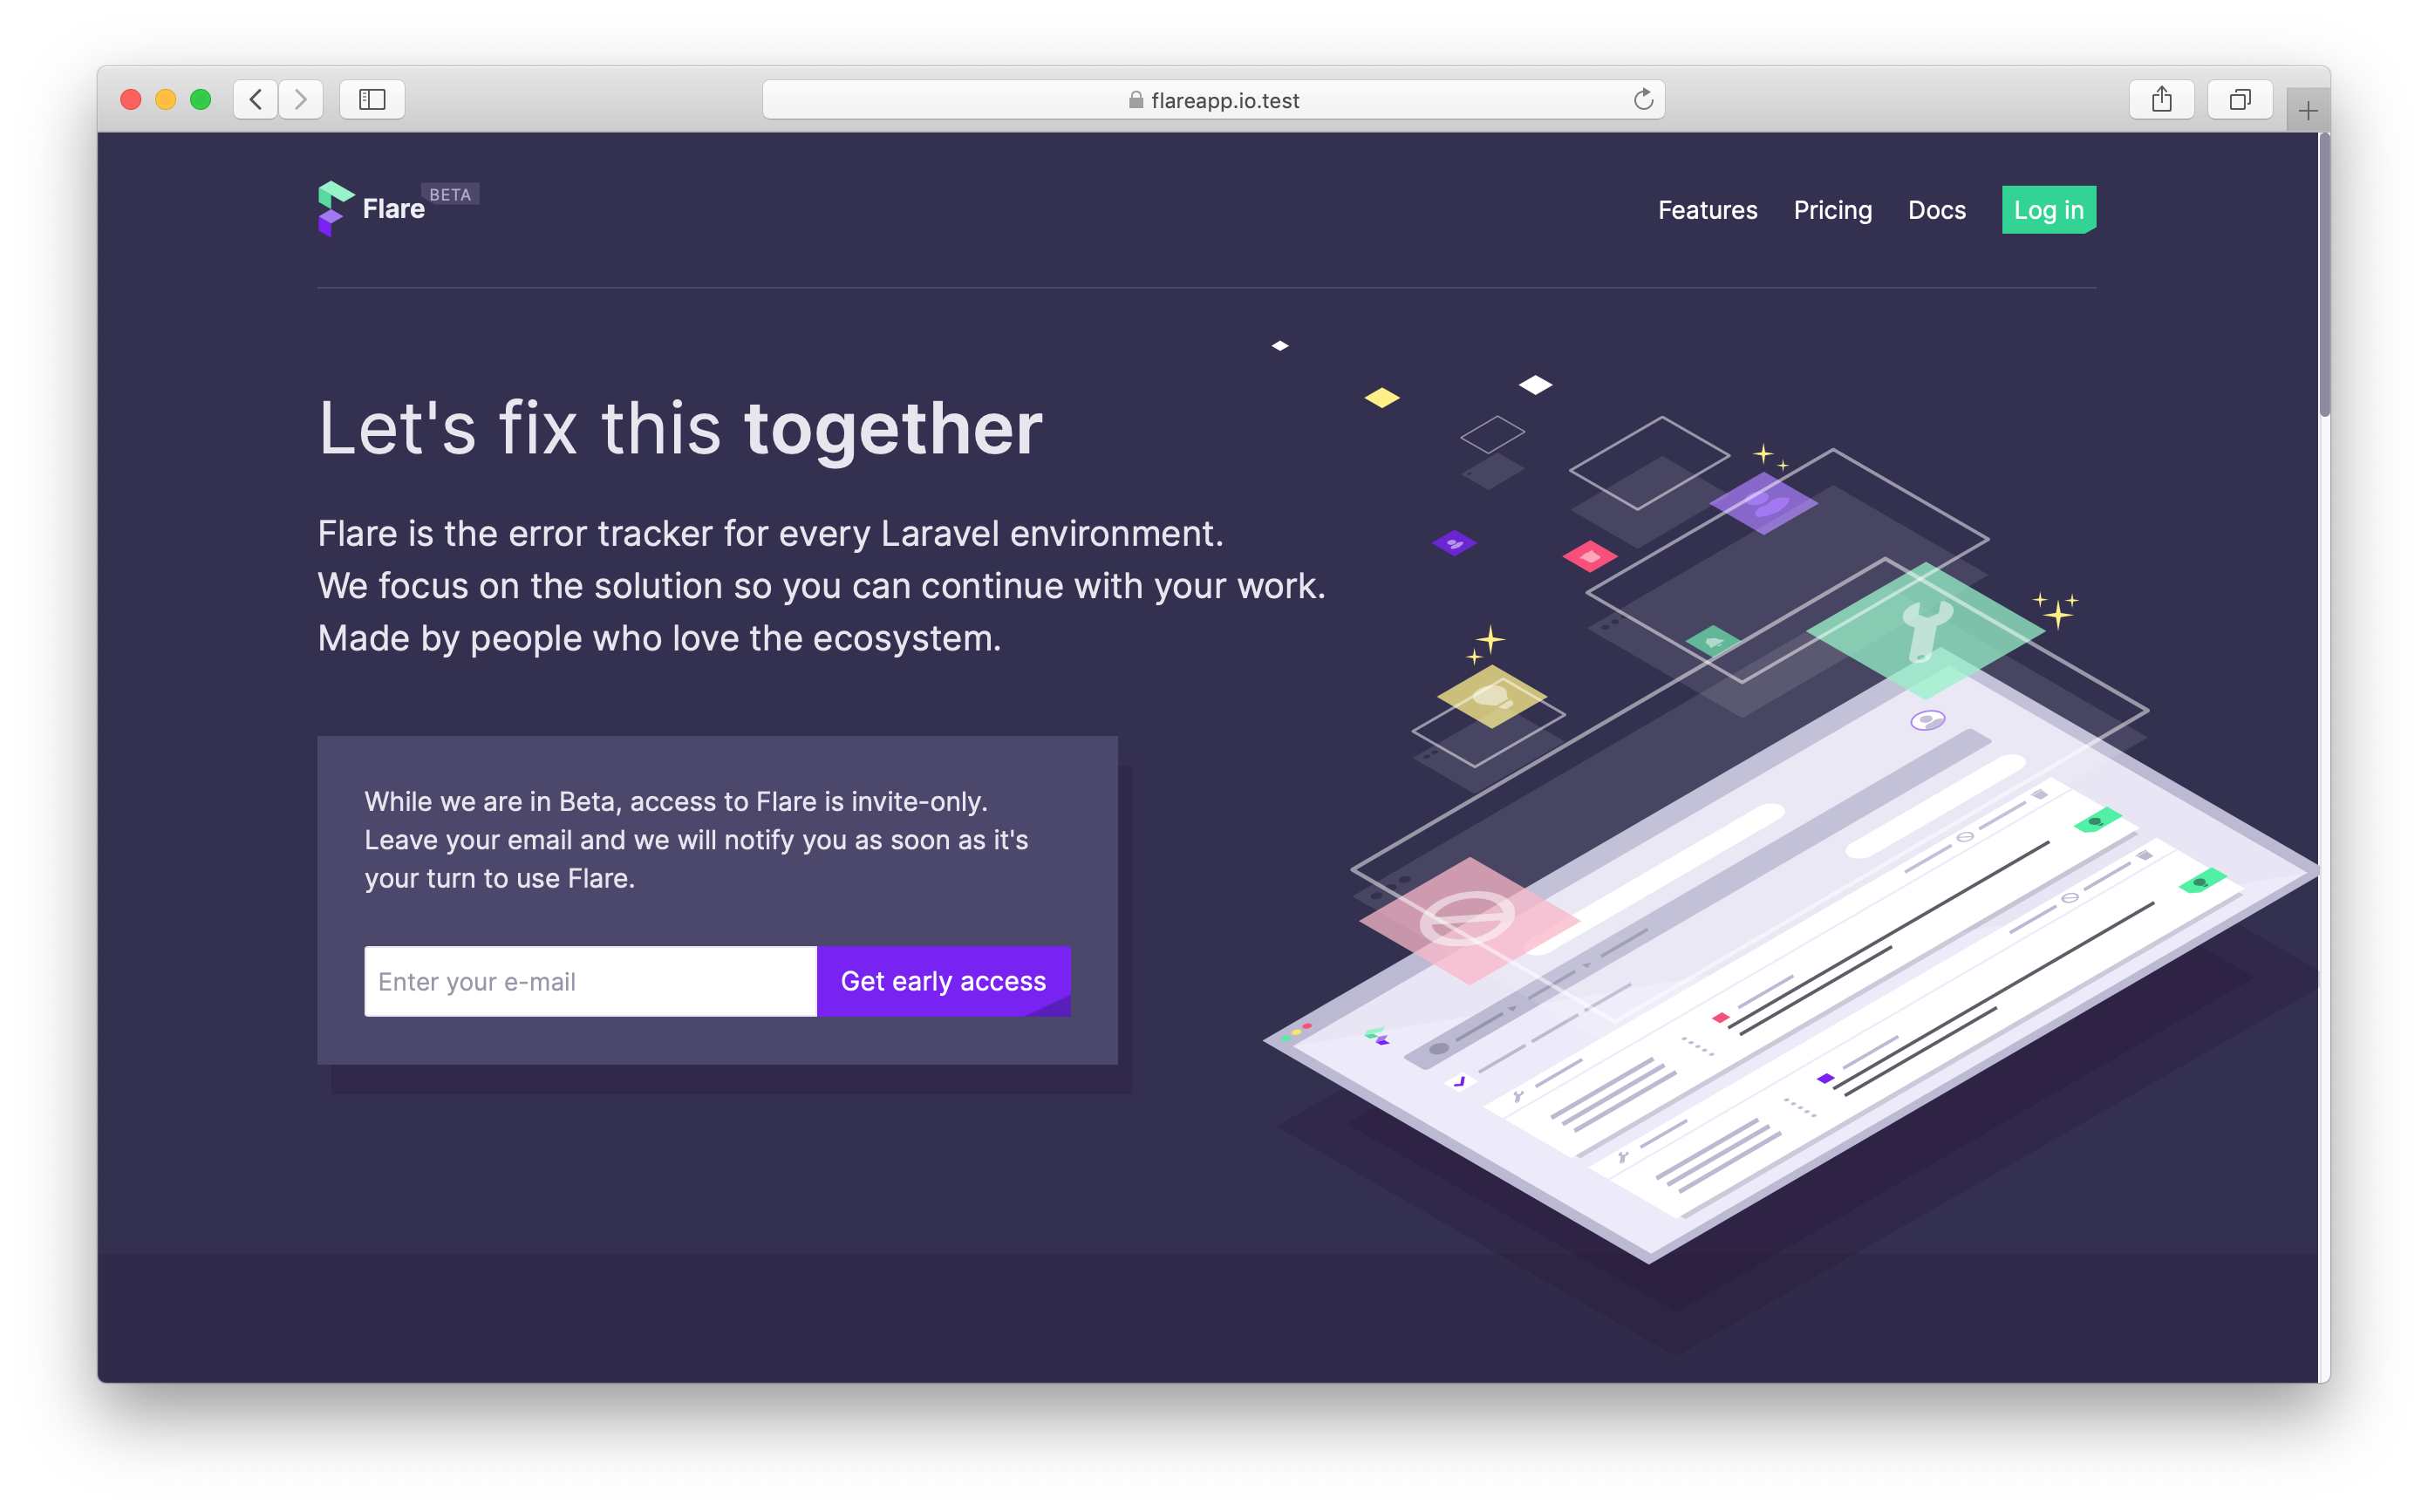 Flare home page